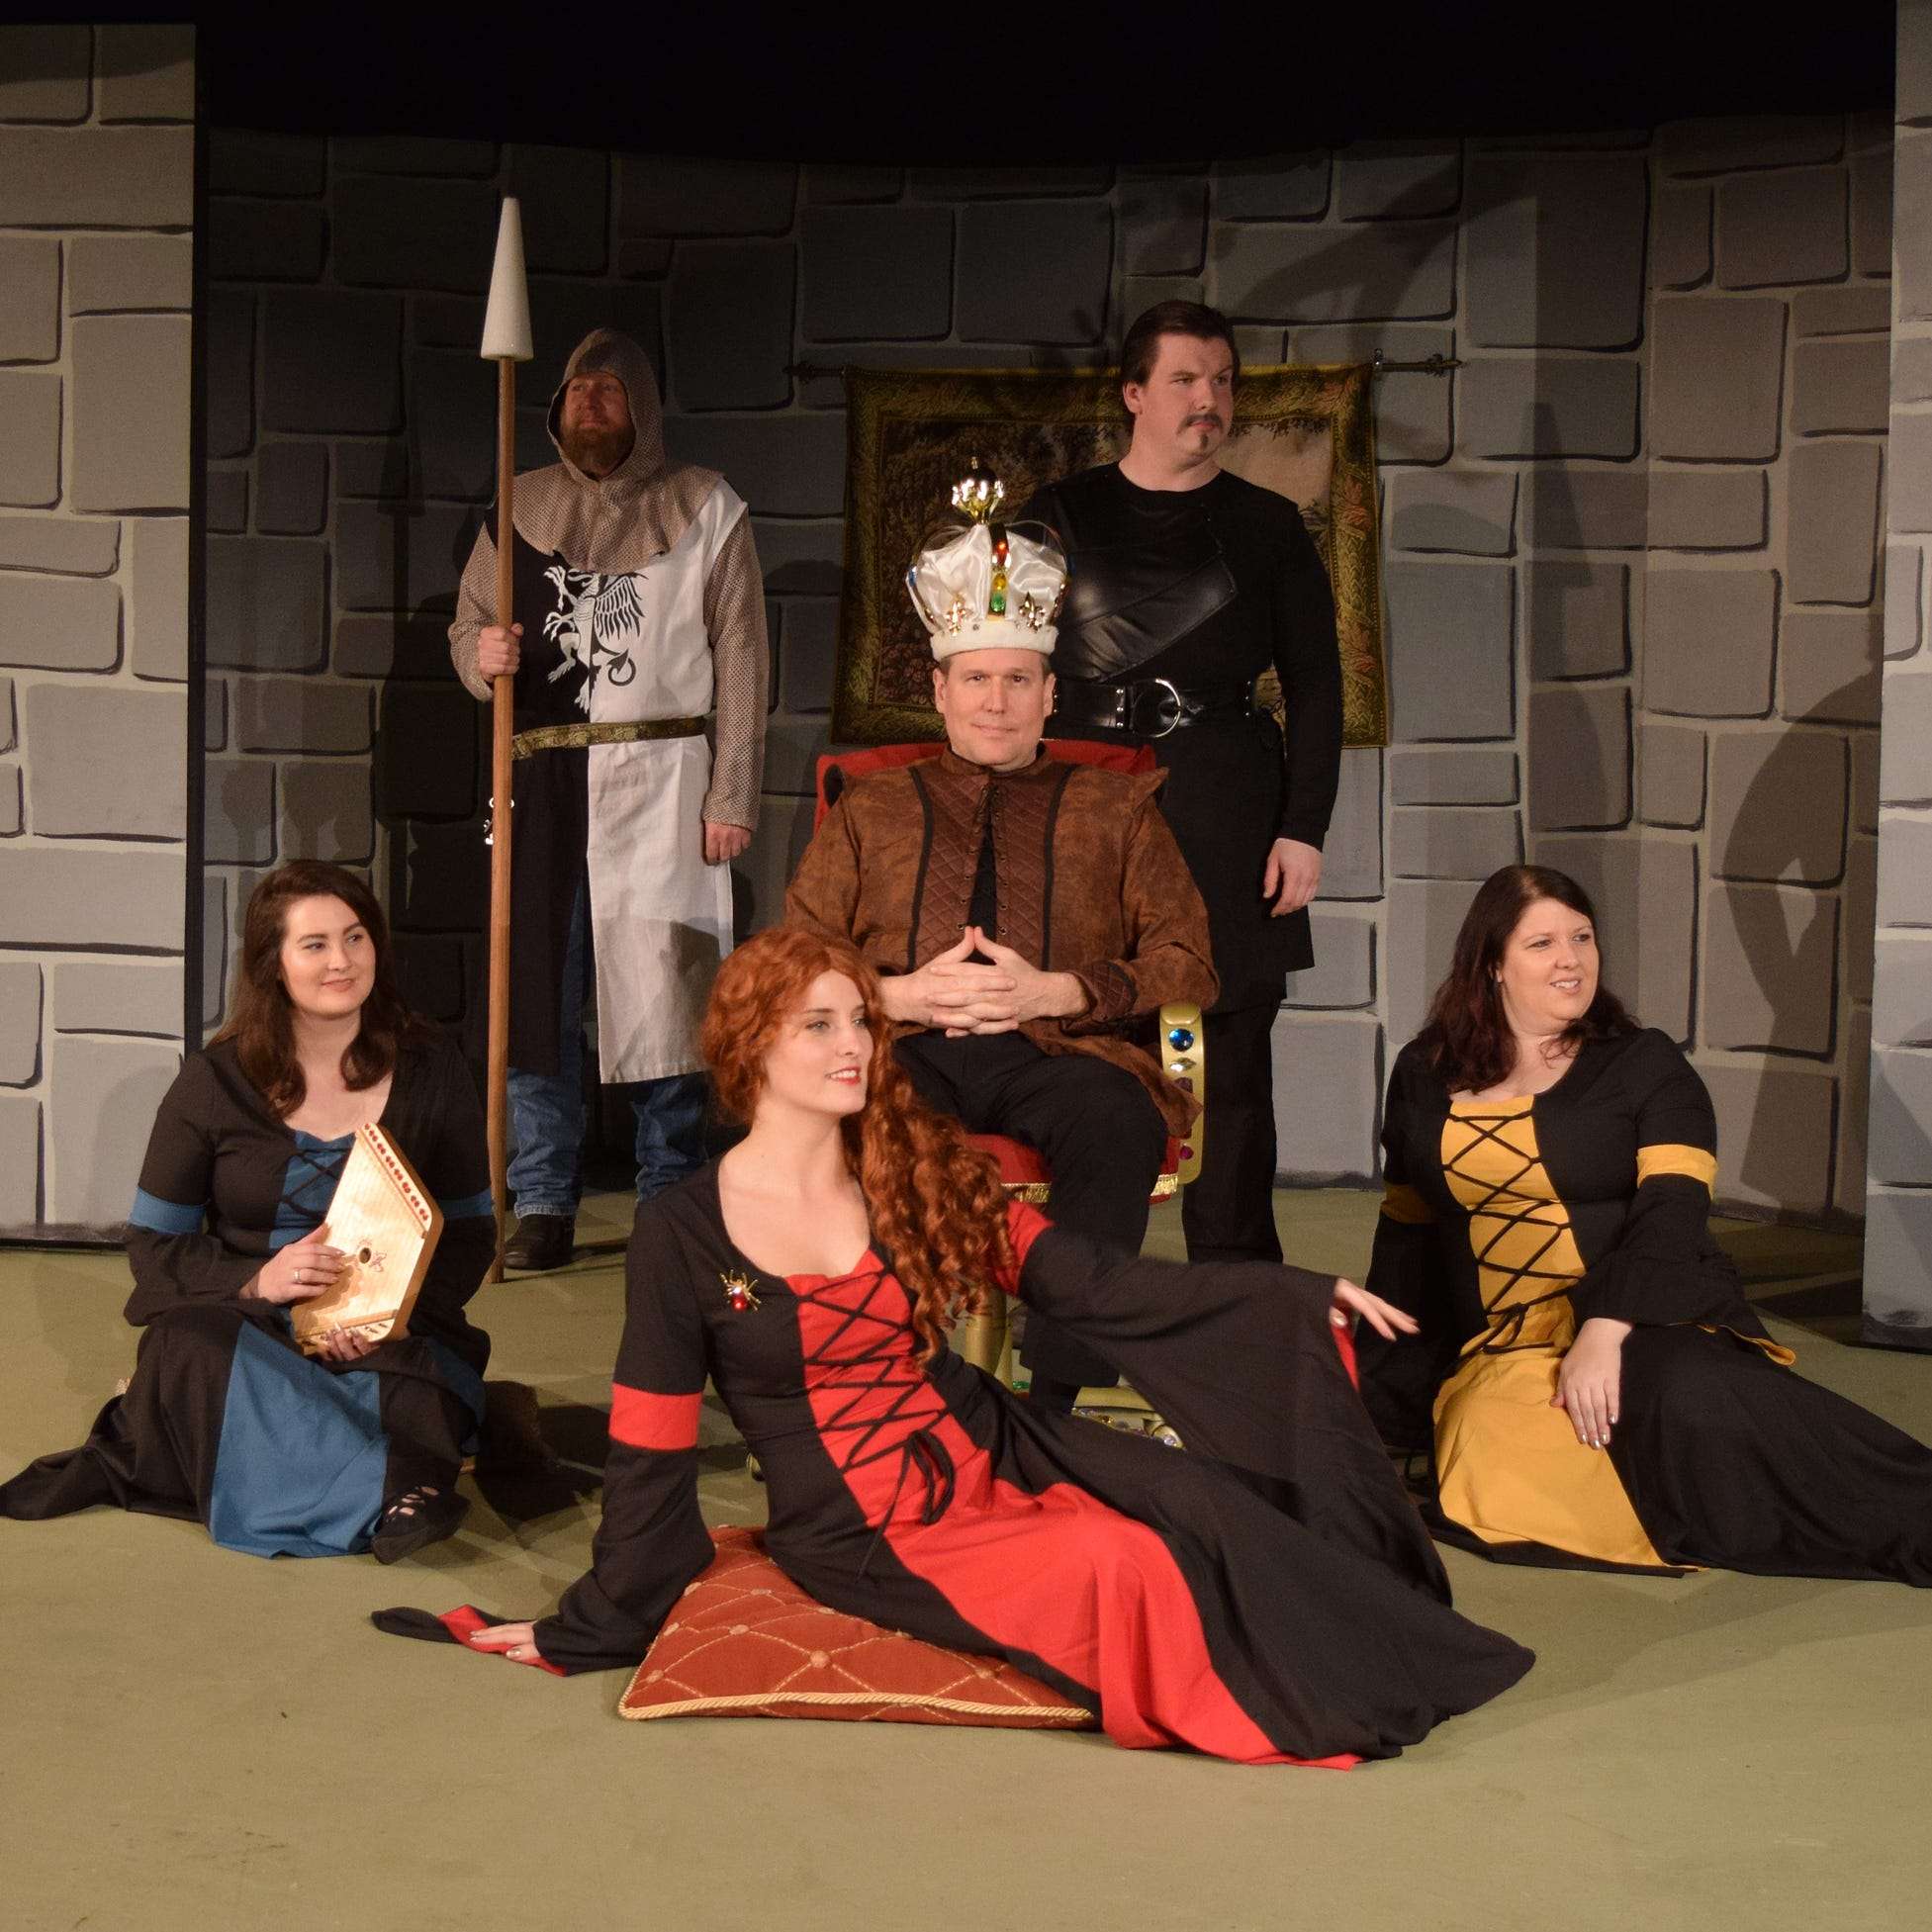 Sherwood Forest fills with laughs in Riverfront's 'Robin Hood' romp